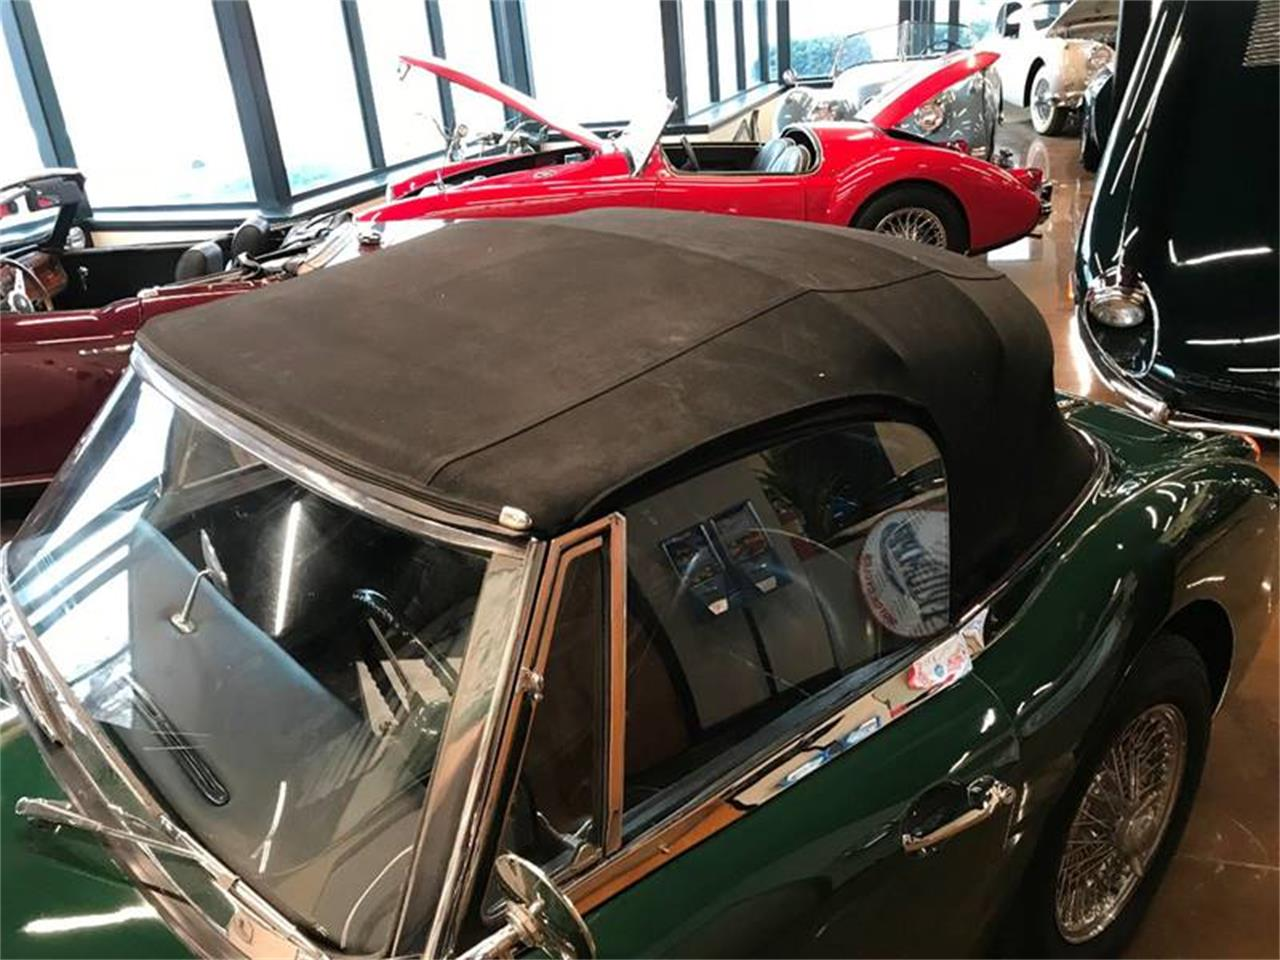 1967 Austin-Healey 3000 Mark III BJ8 for sale in St Louis, MO – photo 9